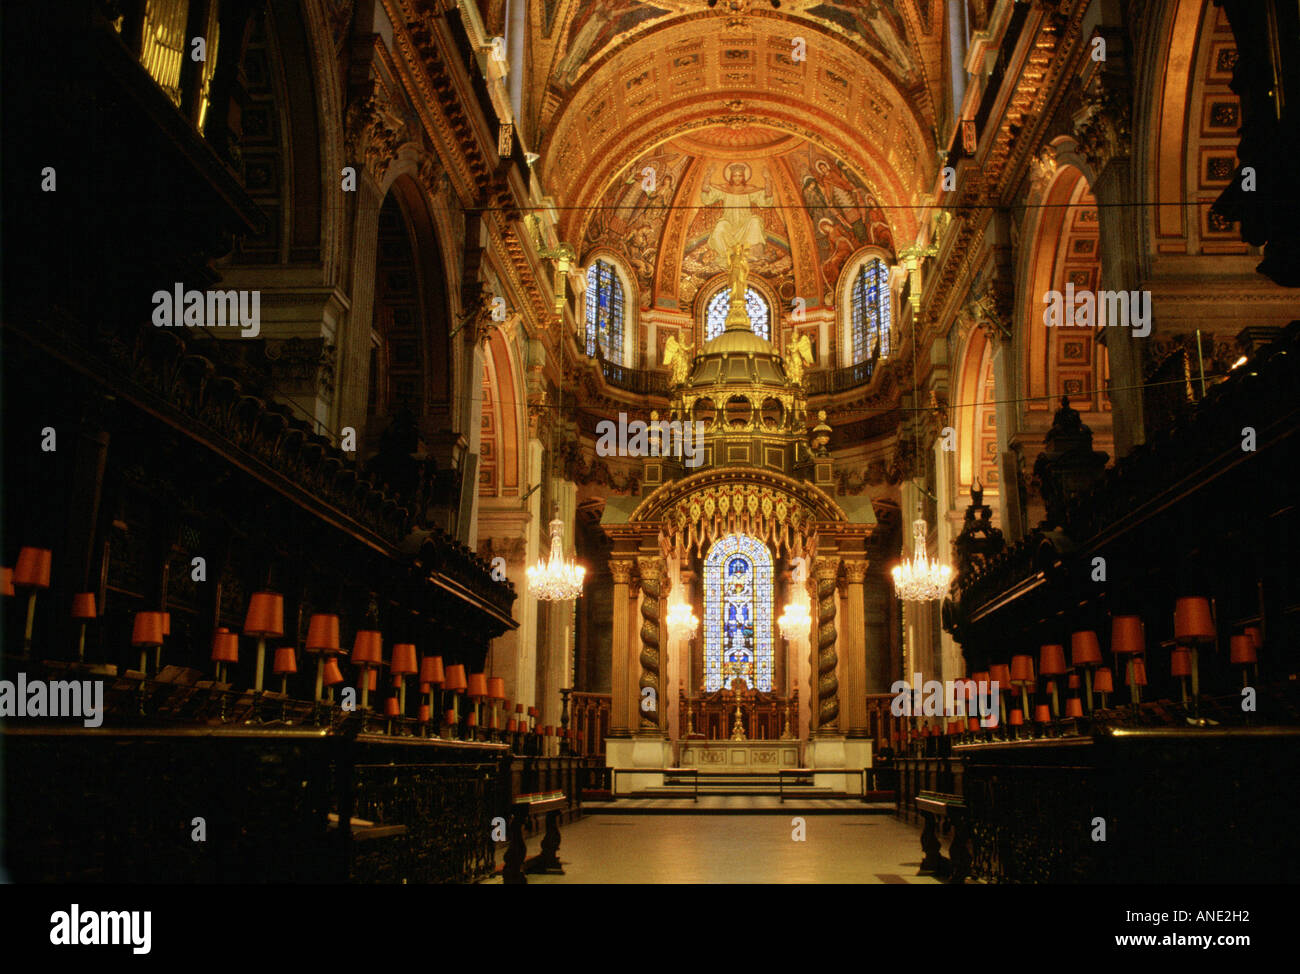 Interior of St Paul s Cathedral which was designed by architect Sir Christopher Wren London UK - Stock Image